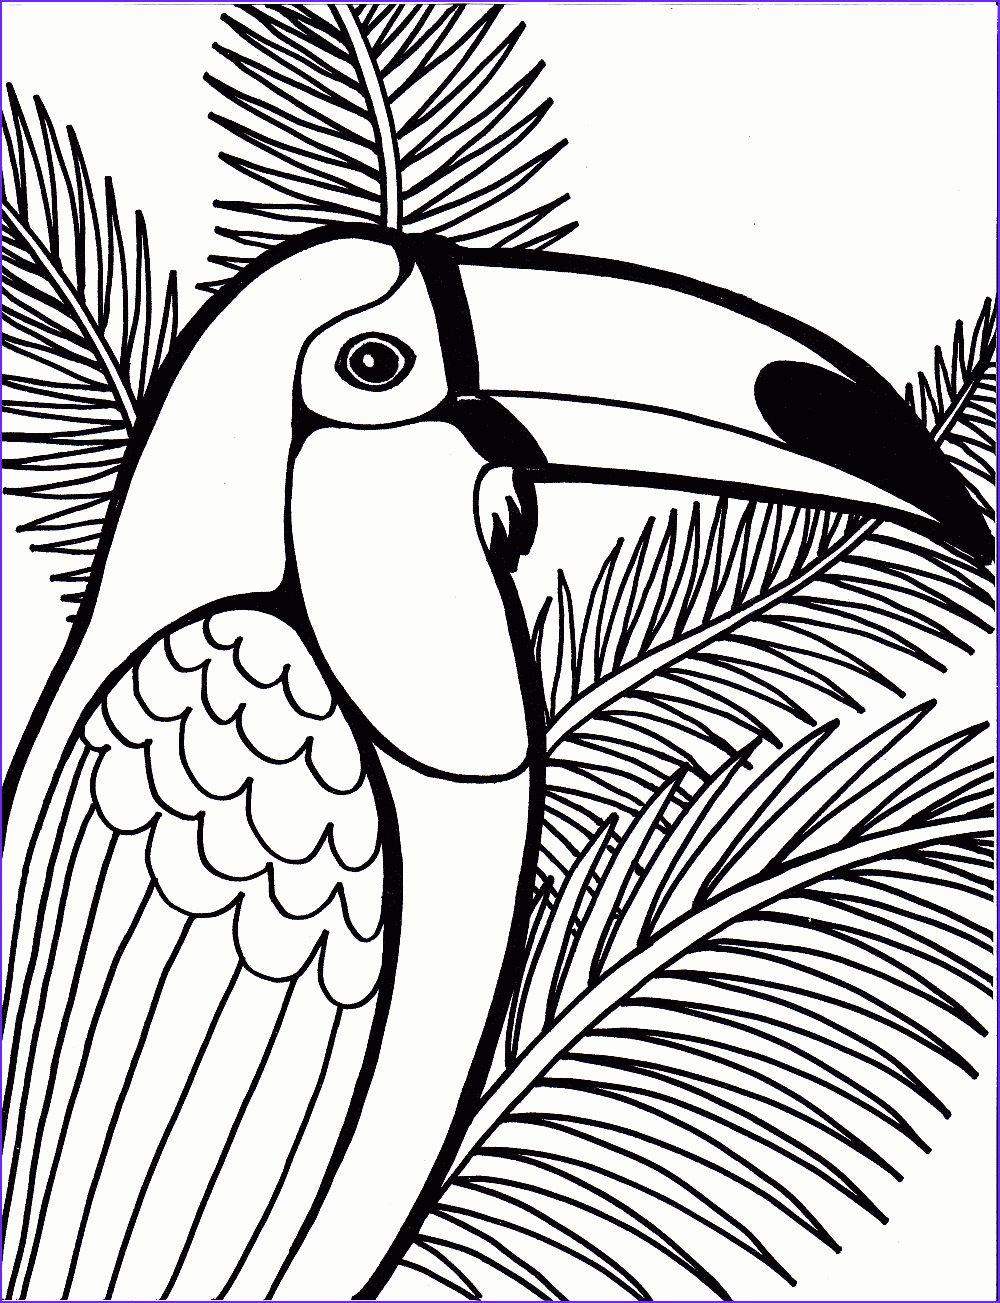 Childrens Coloring Book Elegant Photos Free Printable Parrot Coloring Pages for Kids